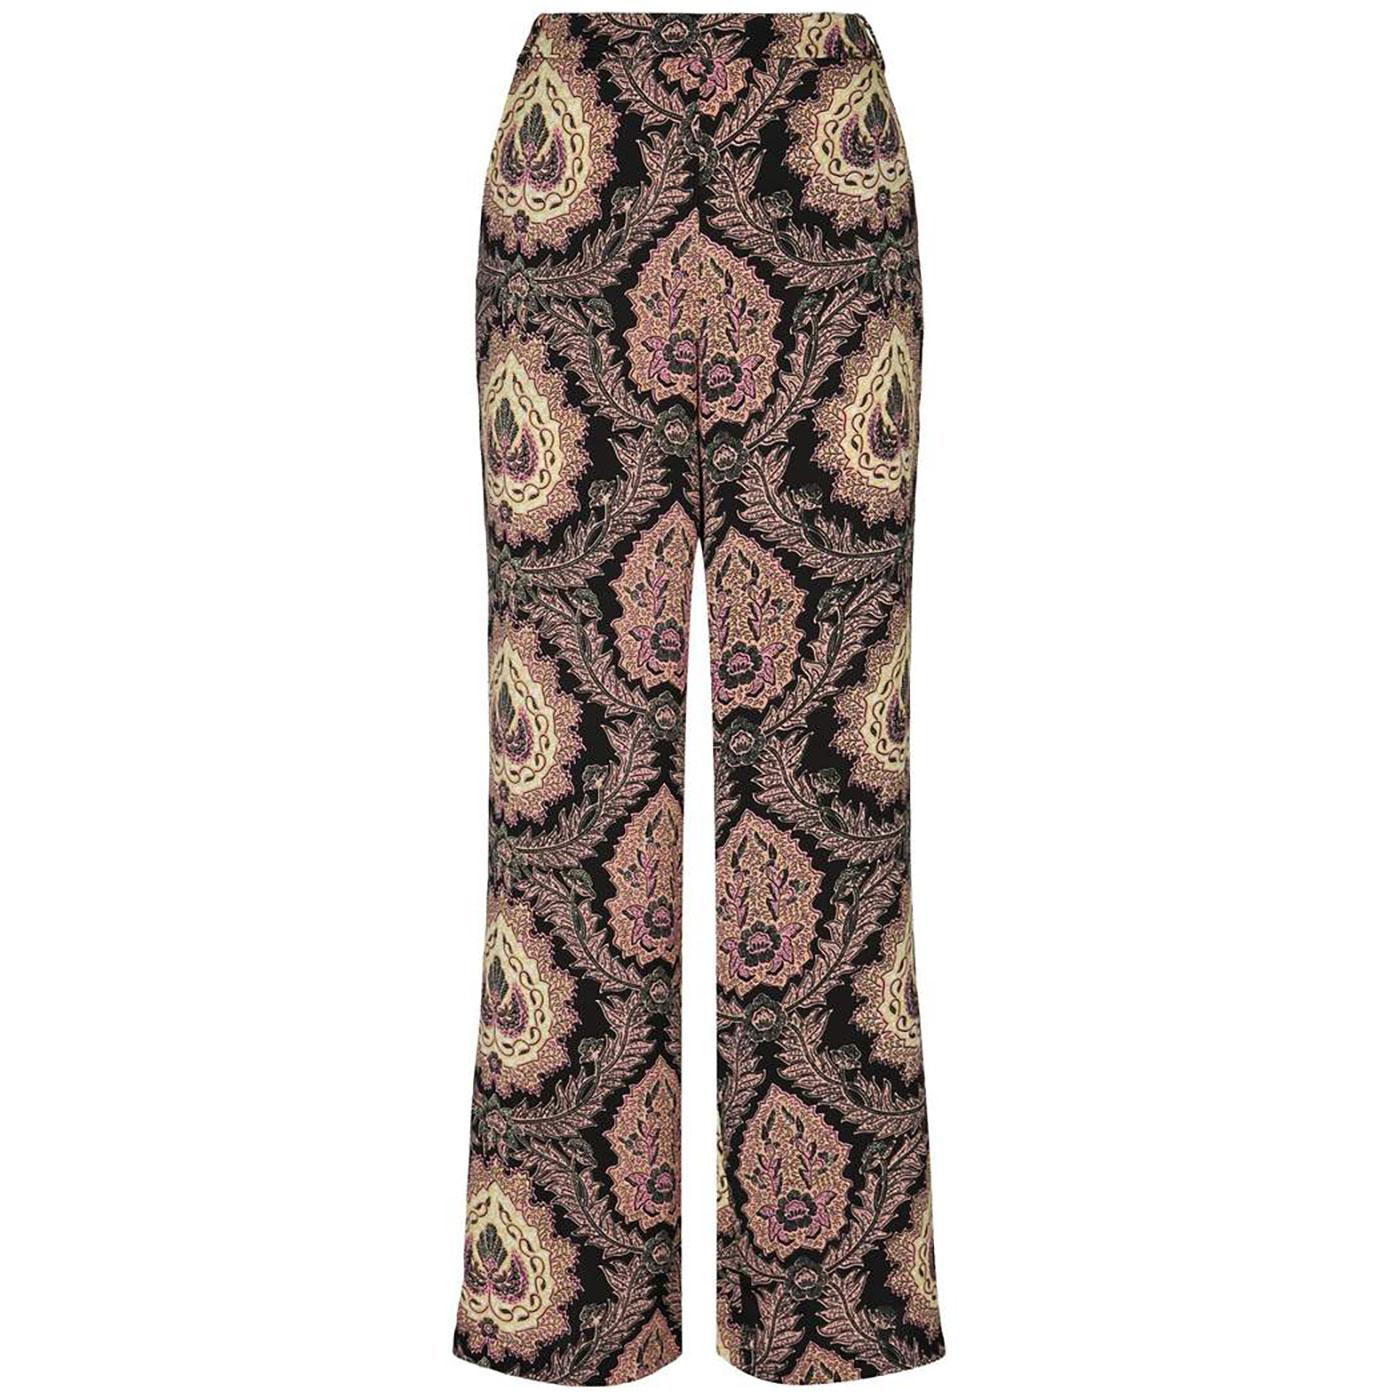 Pantomime And Paisley TRAFFIC PEOPLE 60s Trousers